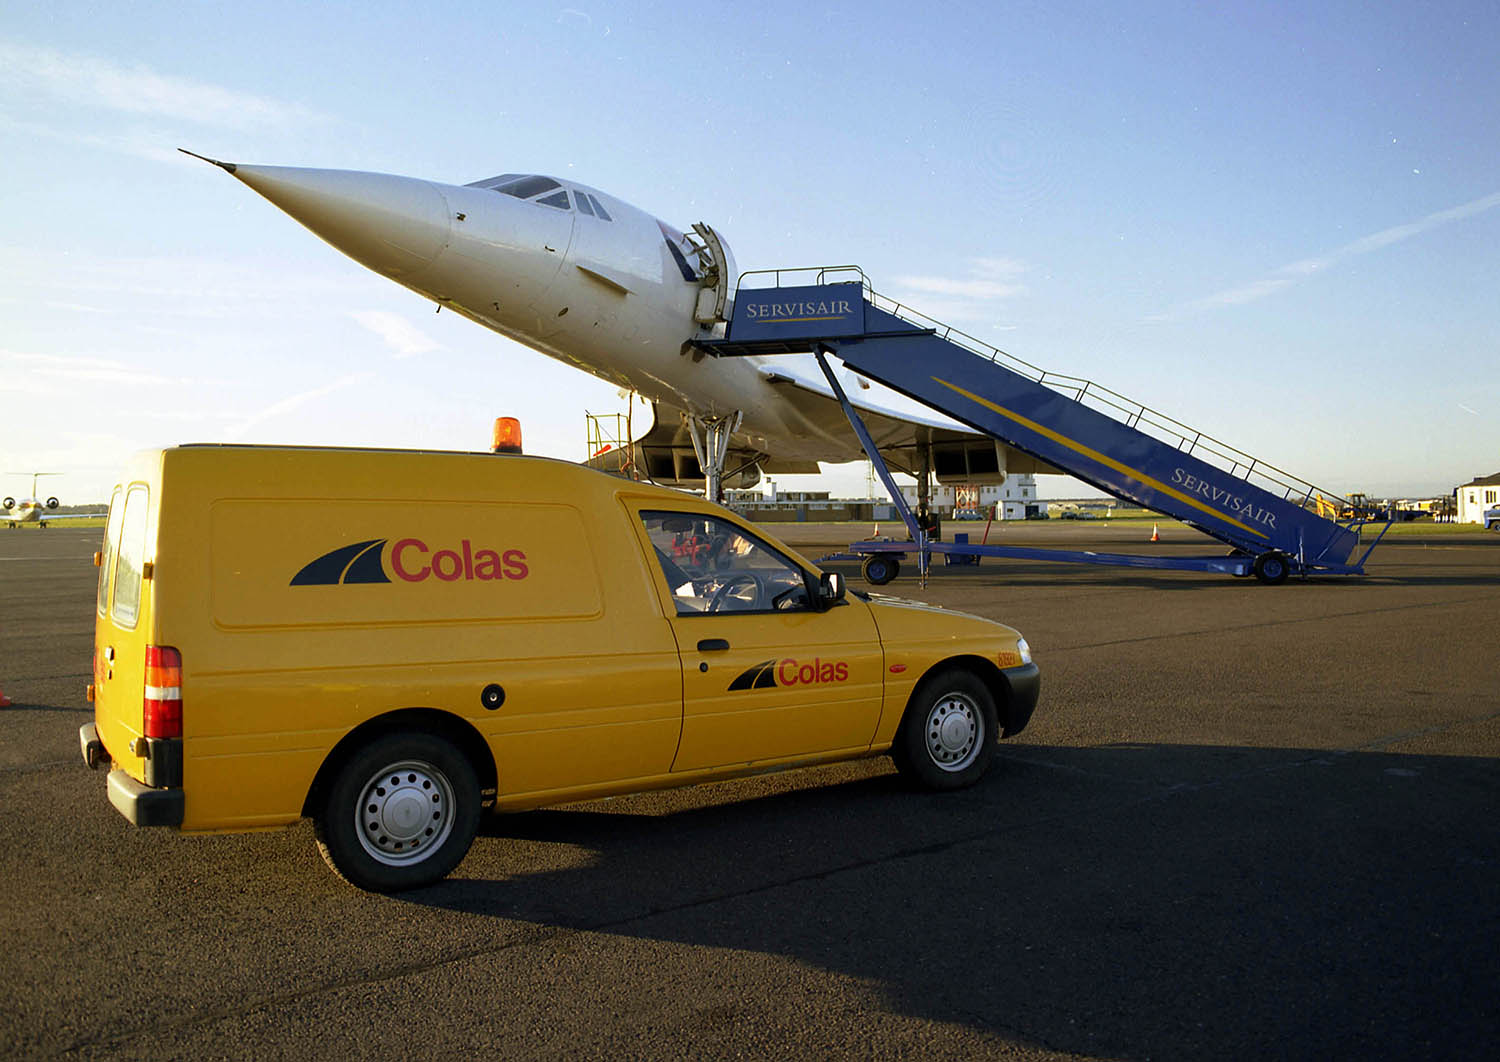 Colas at Bournemouth with Concorde